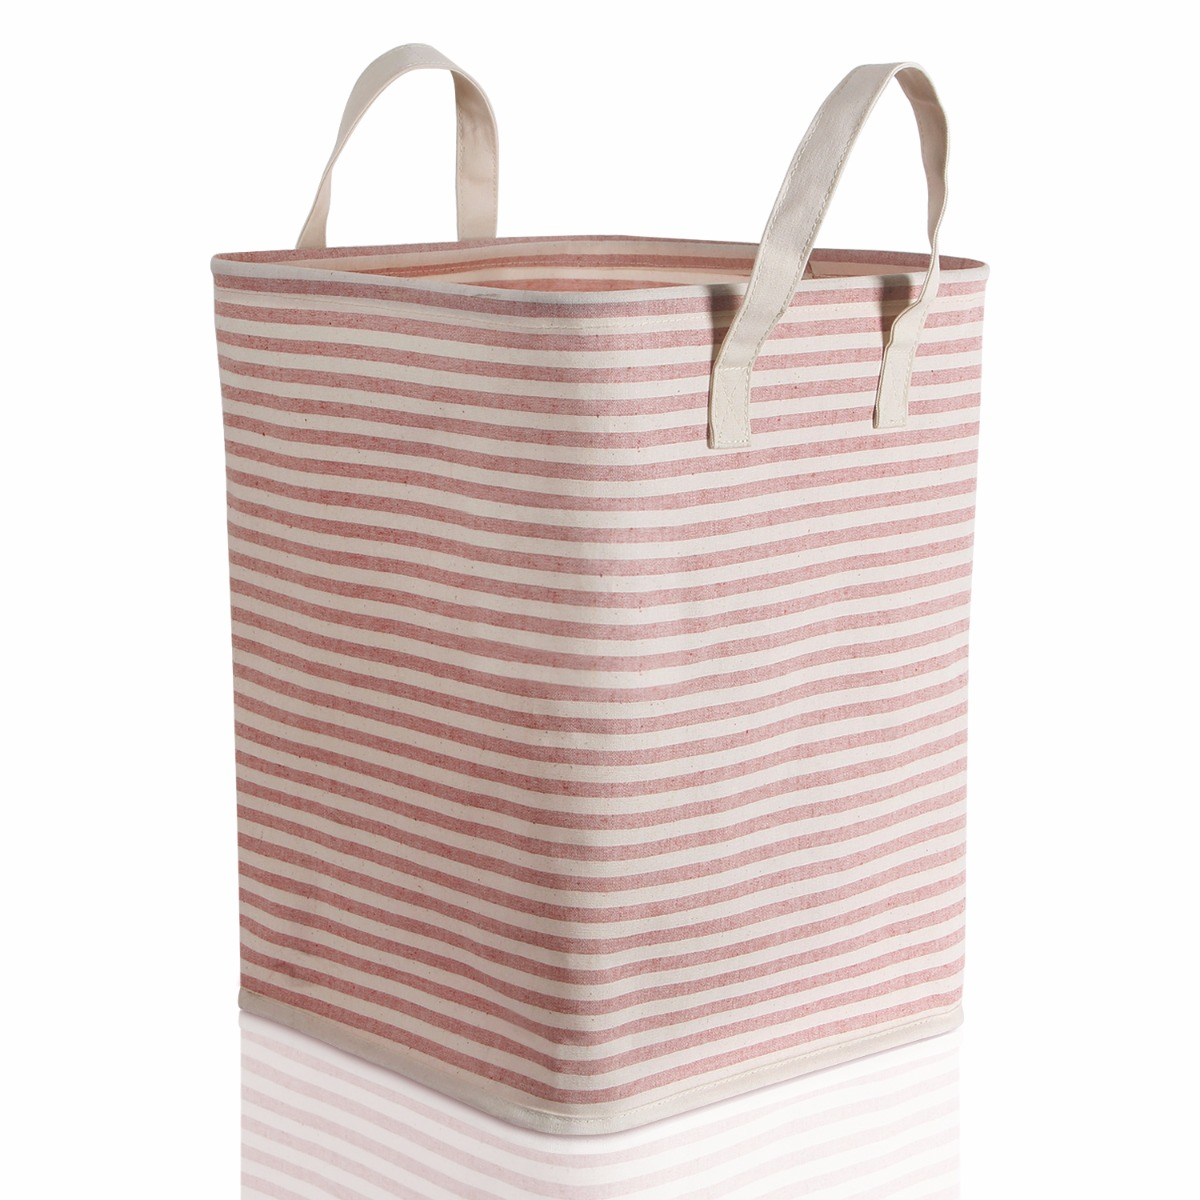 Lifewit Foldable Laundry Hampers Upstanding Baskets with Handles Water-resistant Large-size for Bedroom,Bathroom